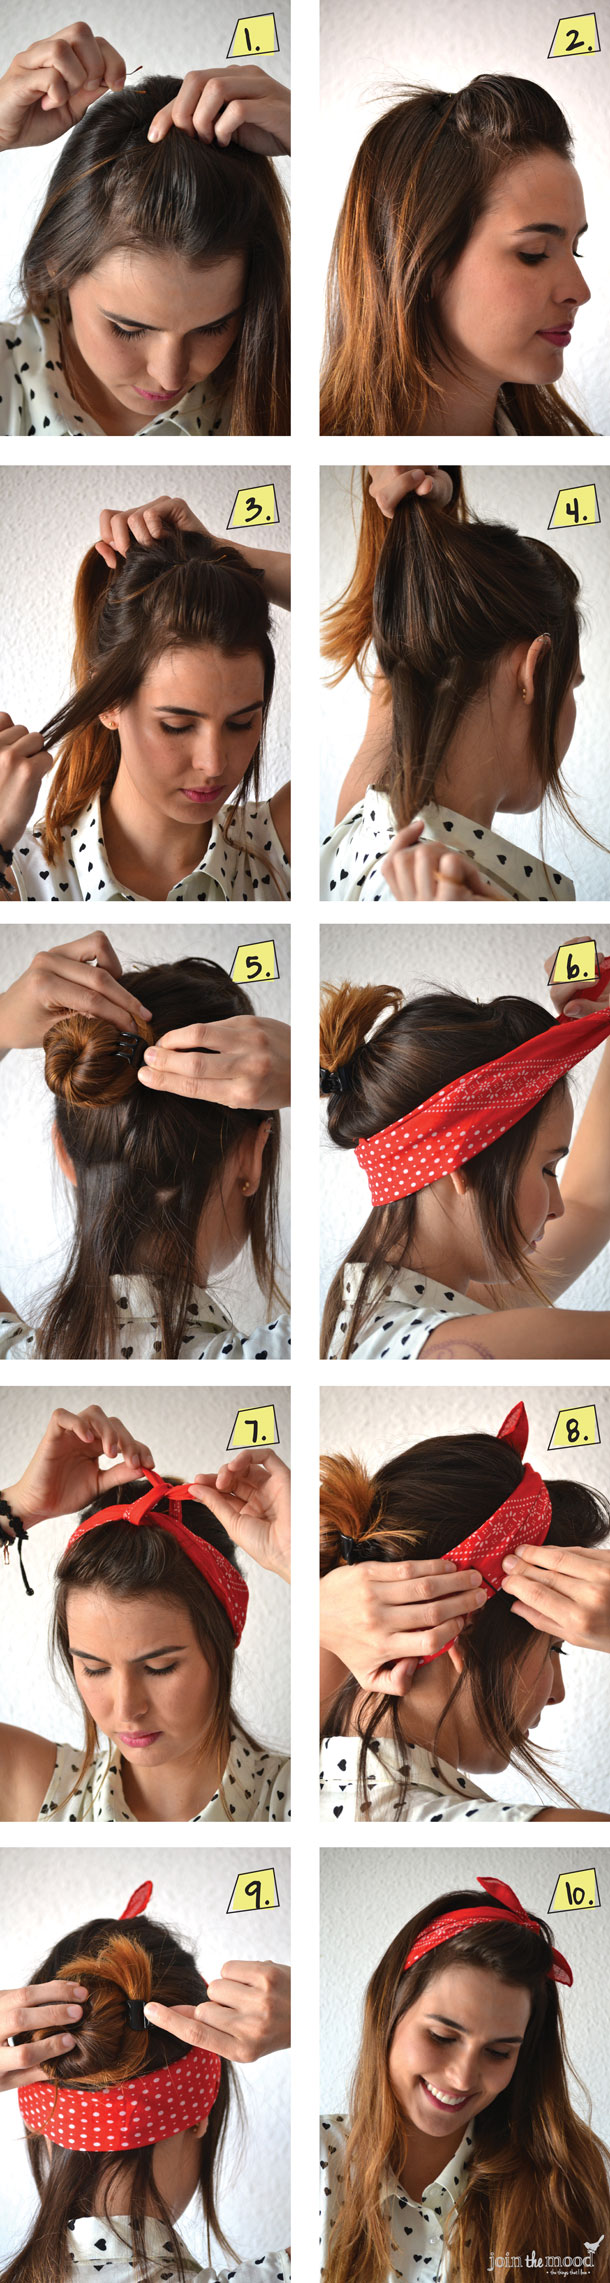 Hair with a red headscarf